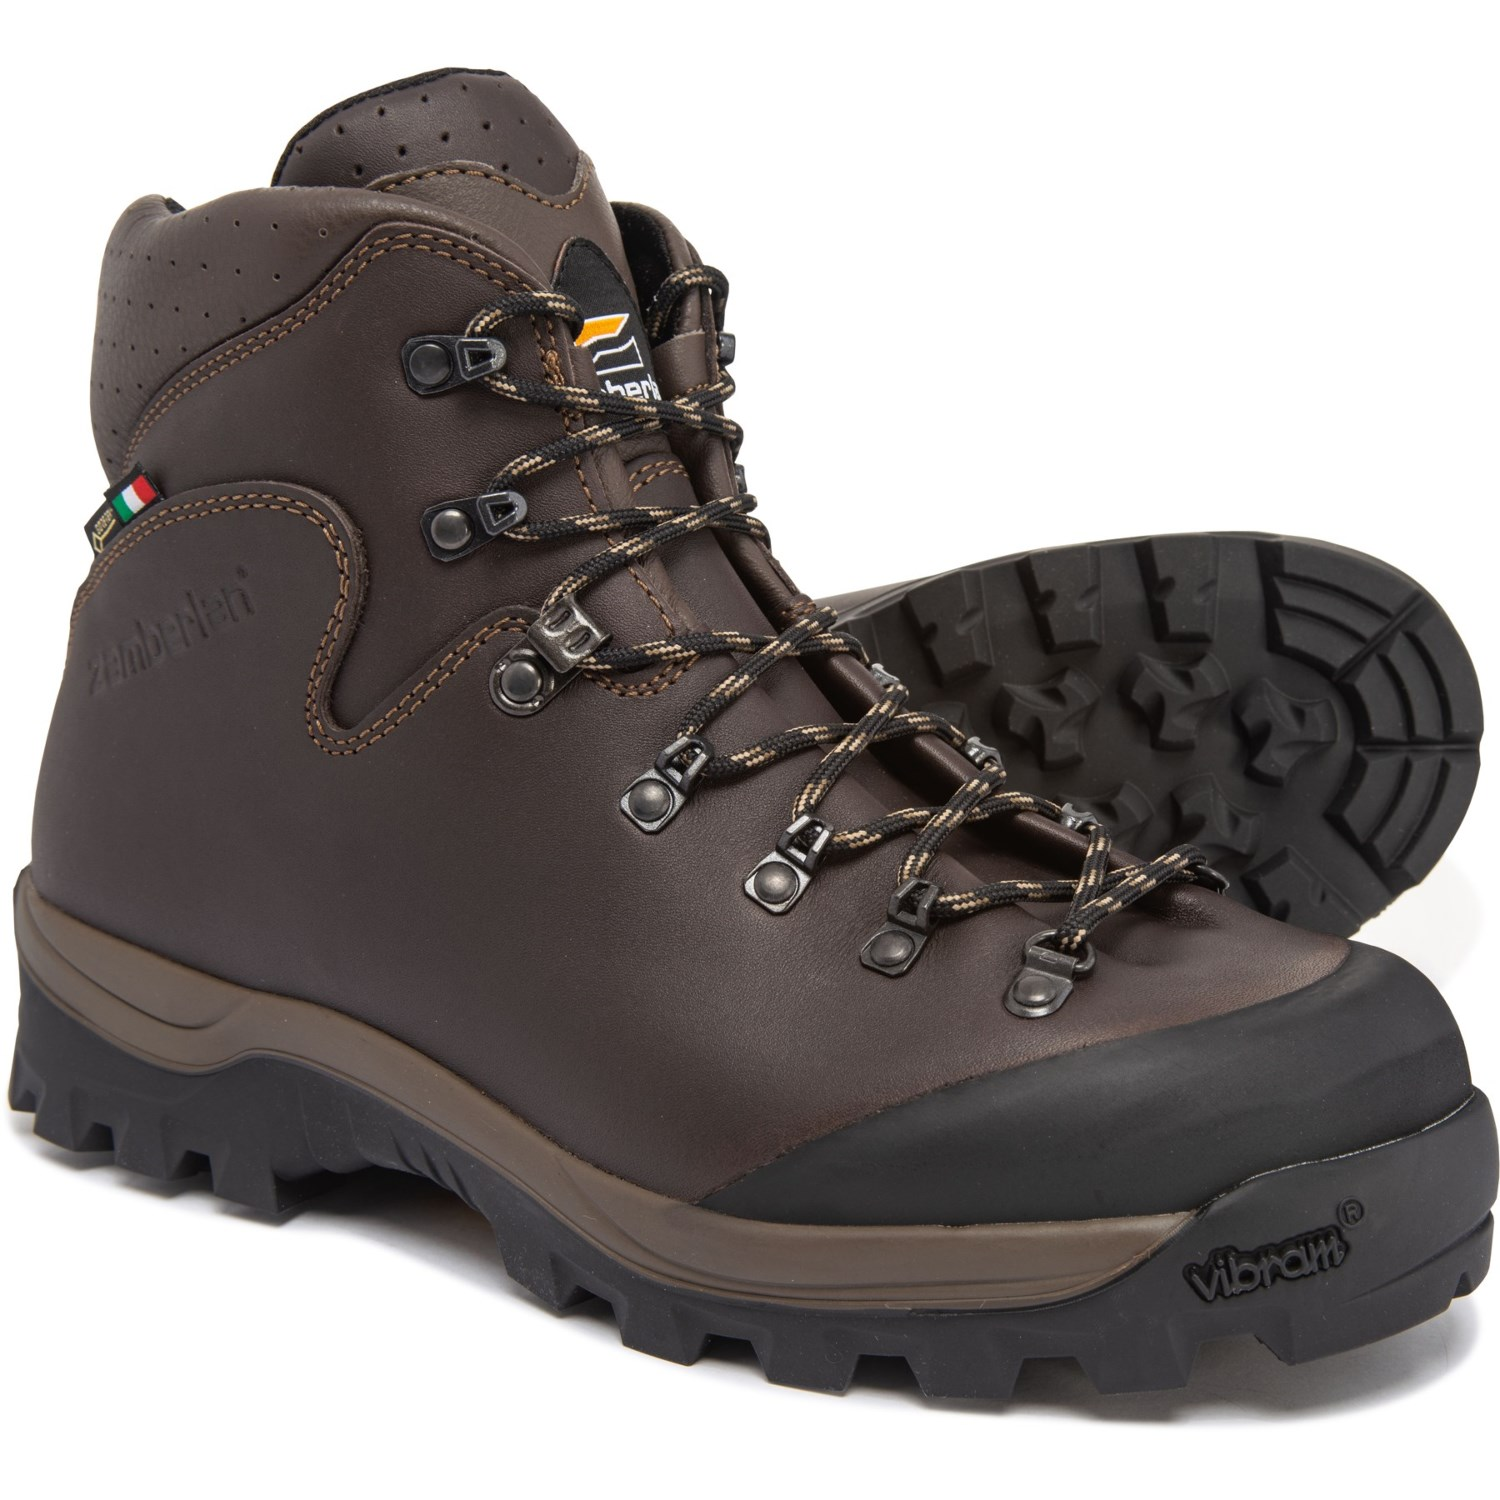 79dd1800135 Zamberlan Made in Italy Haka Gore-Tex® RR Hunting Boots - Waterproof (For  Men)